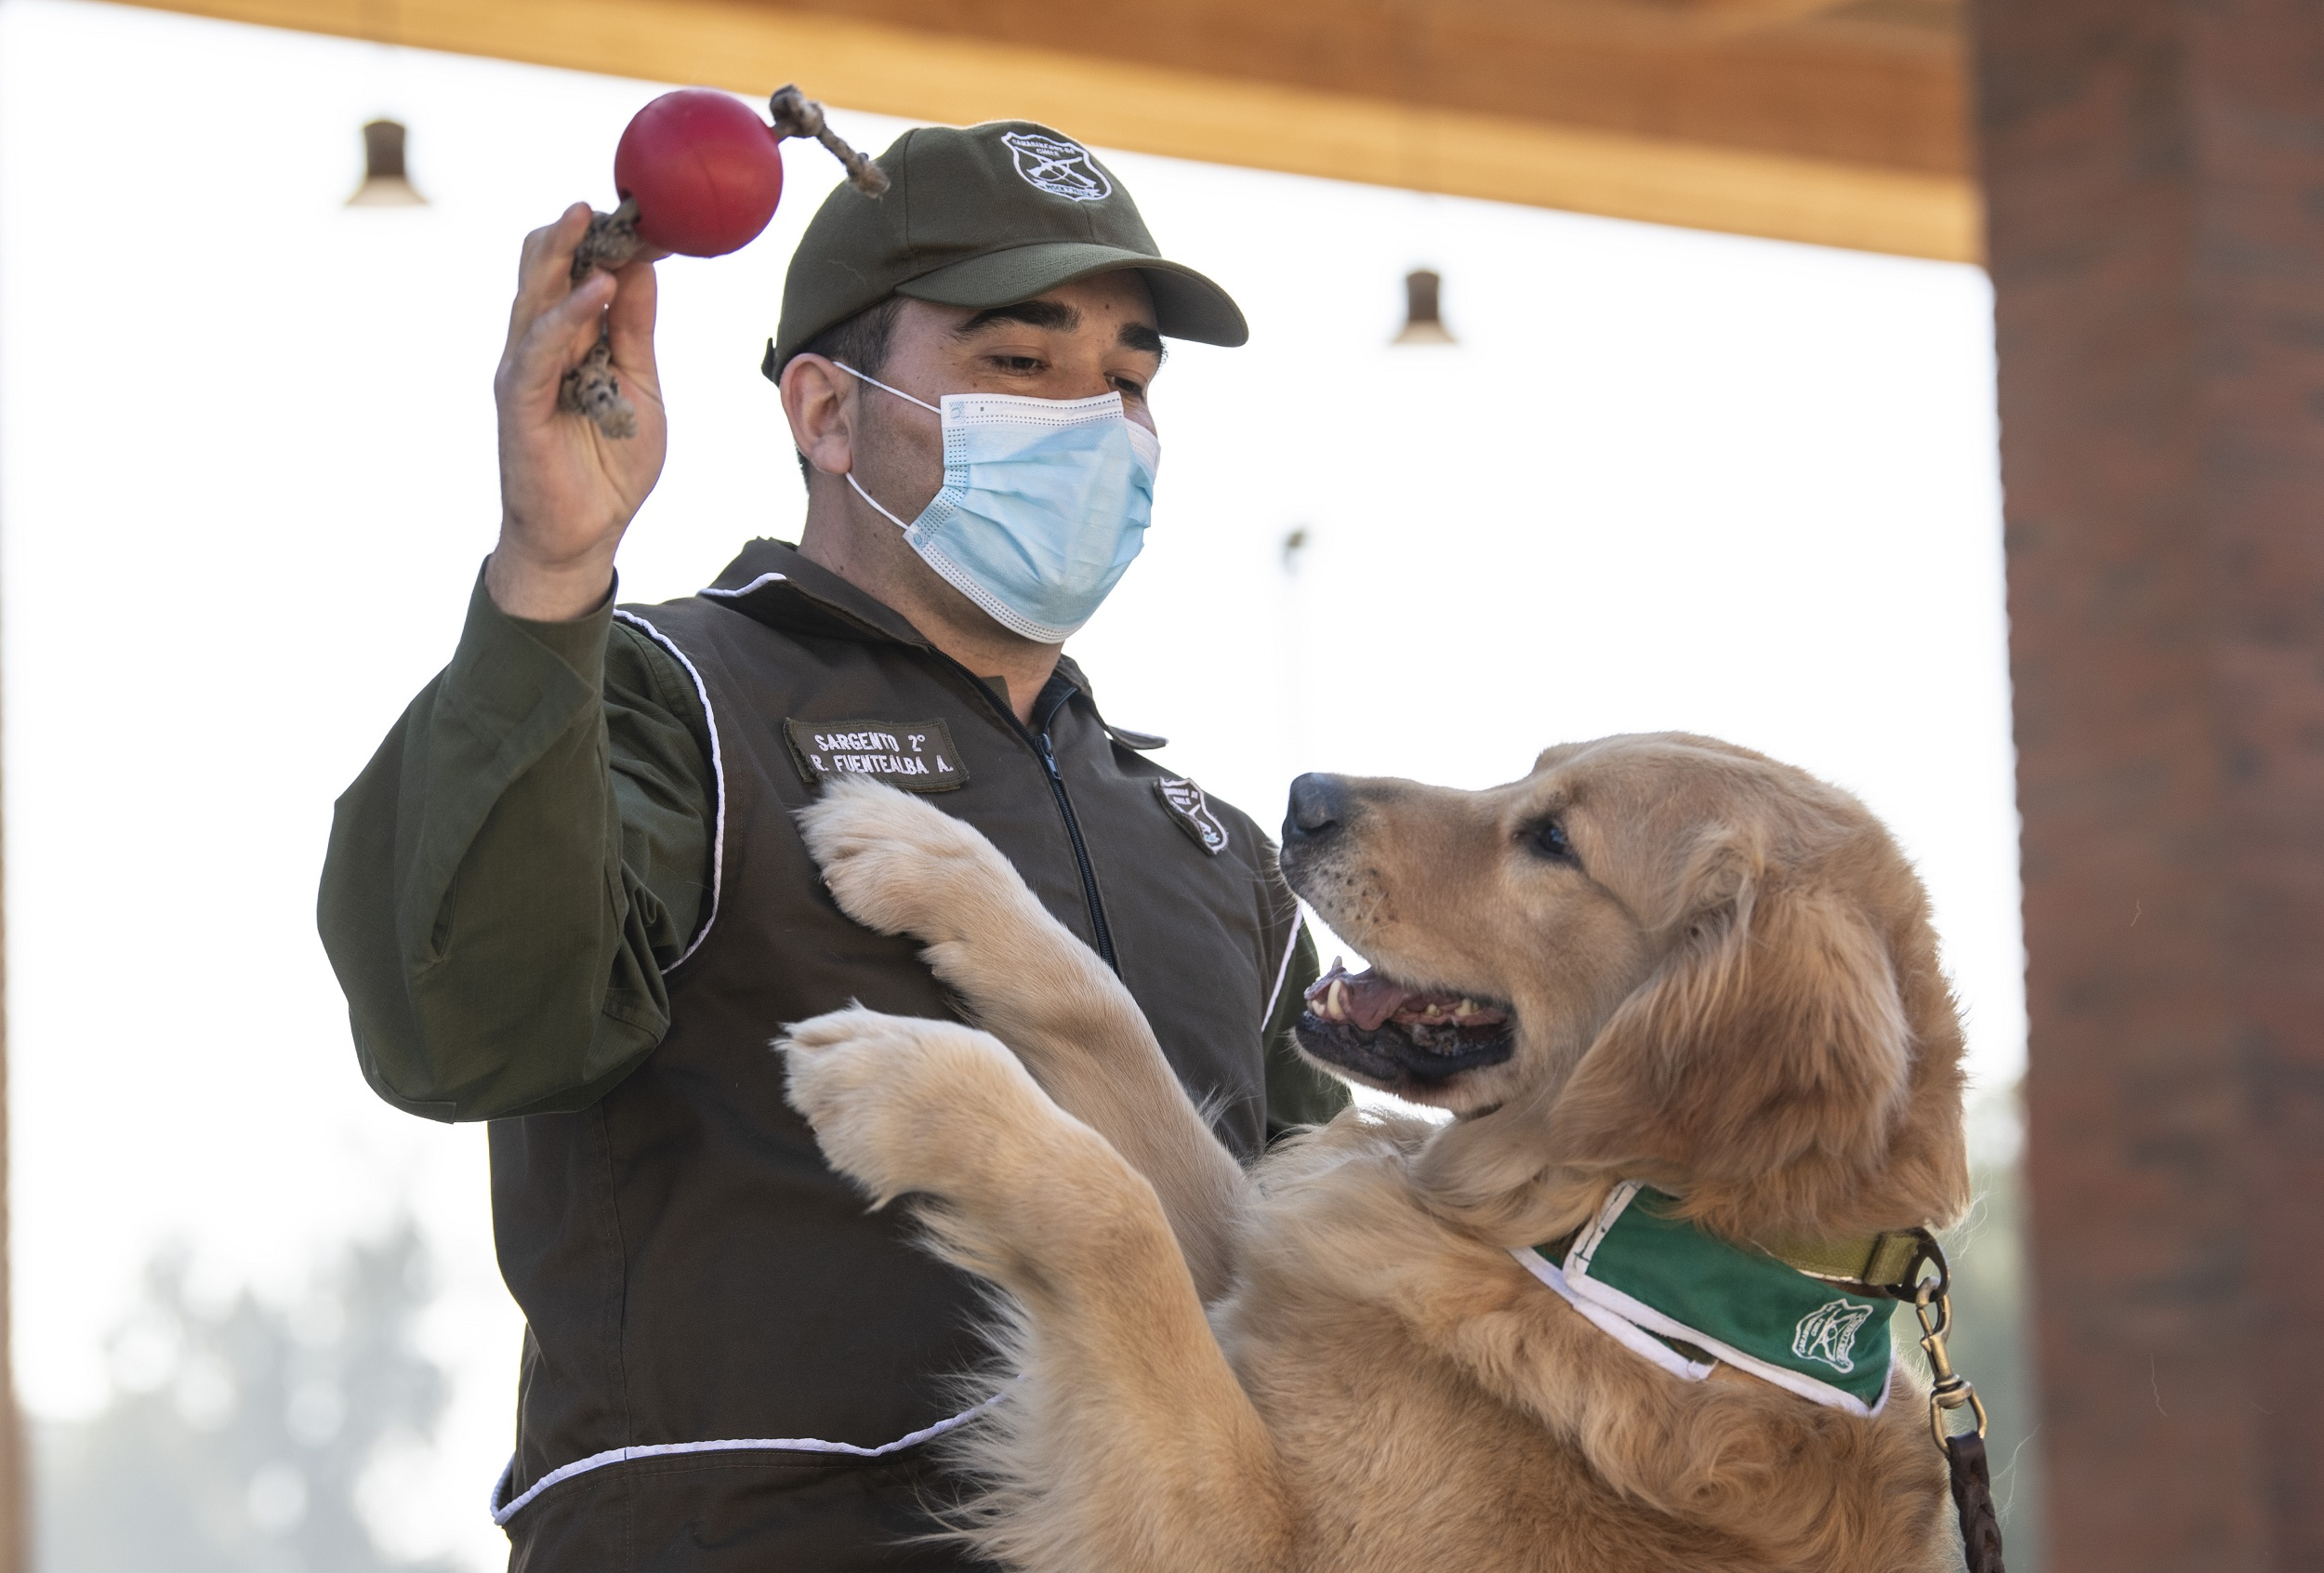 A member of the Chilean Police Canine Training team plays with a Golden Retriever dog named Clifford before the beginning of its training session aimed to detect people infected with COVID-19.